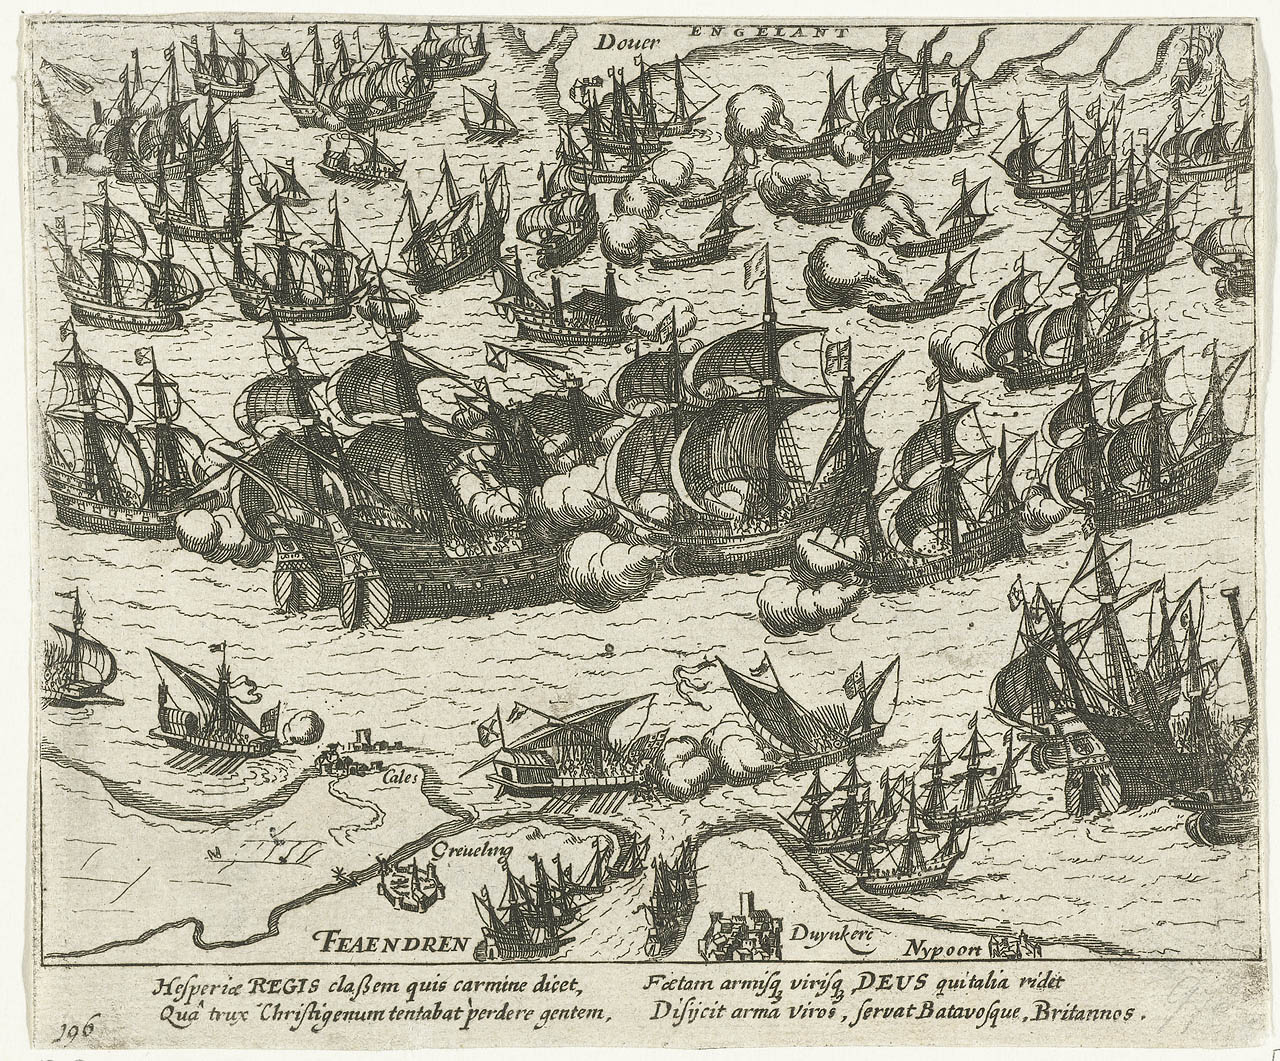 http://upload.wikimedia.org/wikipedia/commons/a/a6/Naval_battle_with_the_Spanish_Armada_-_Zeeslag_met_de_Spaanse_Armada.jpg